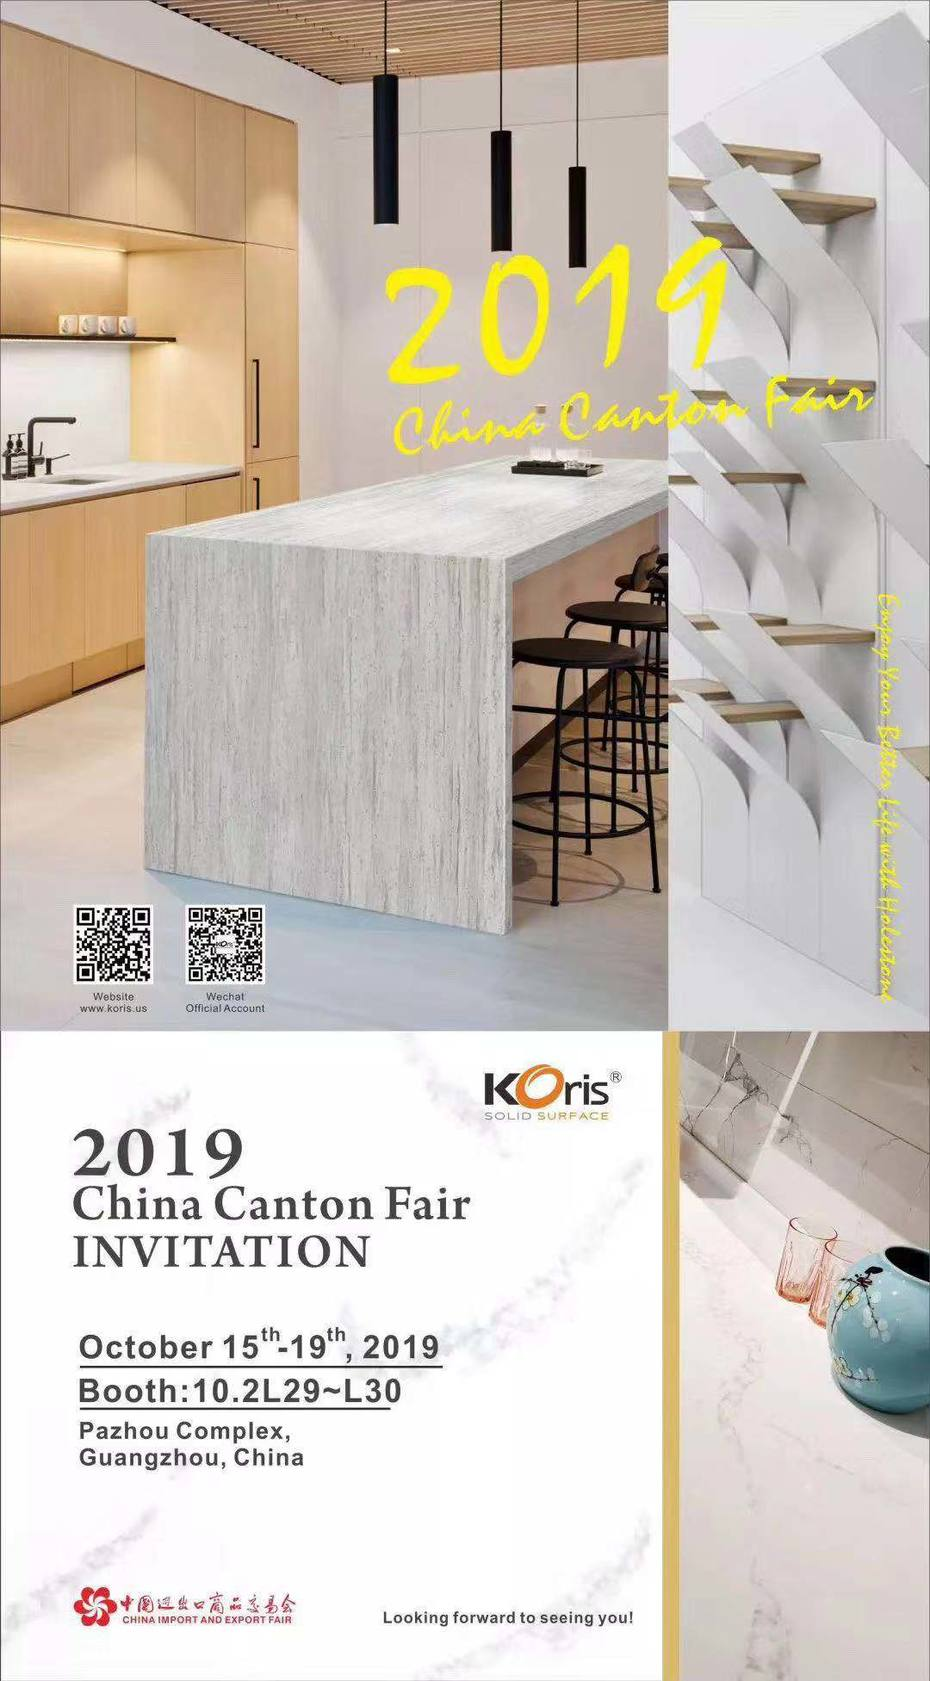 Koris-2019 China Canton Fair-Day2